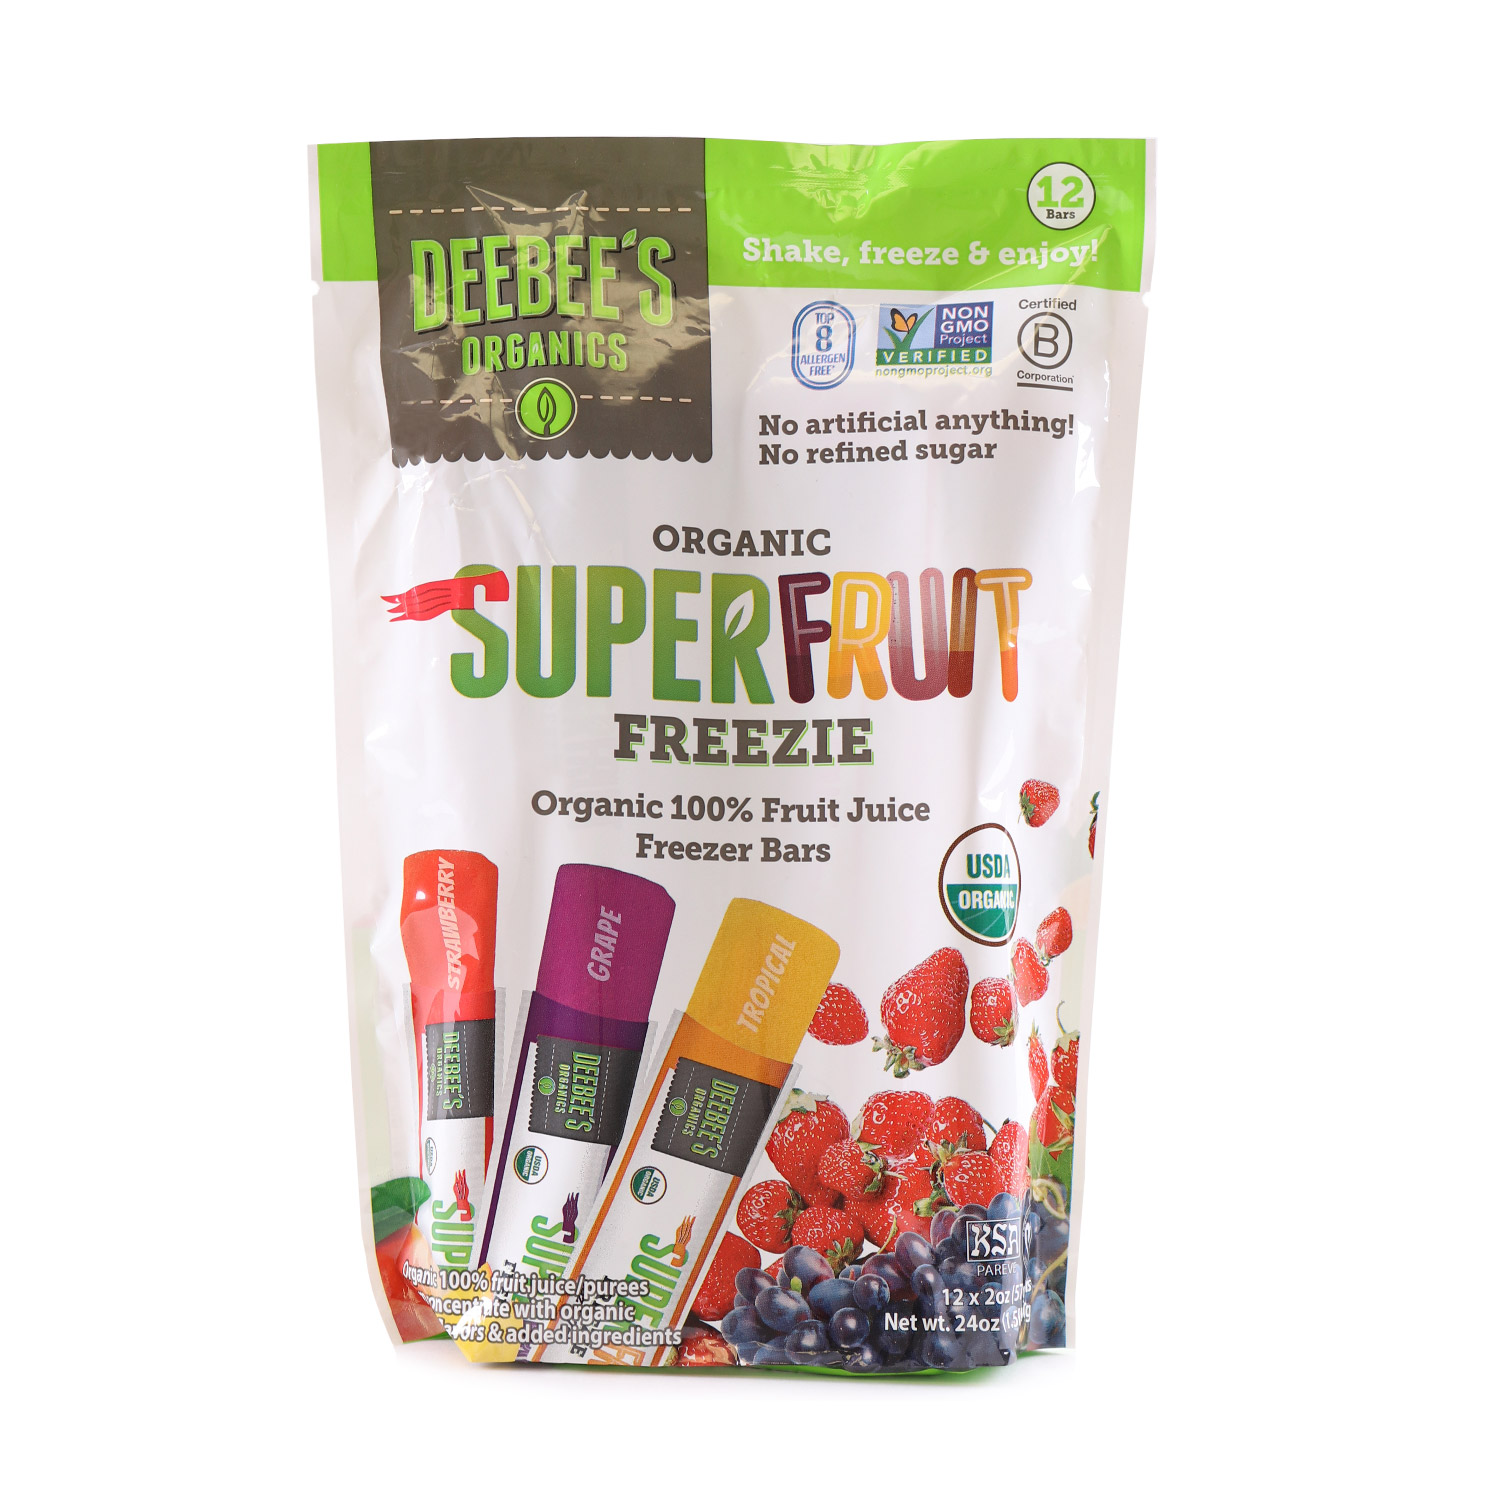 SuperFruit Freezie-Organic